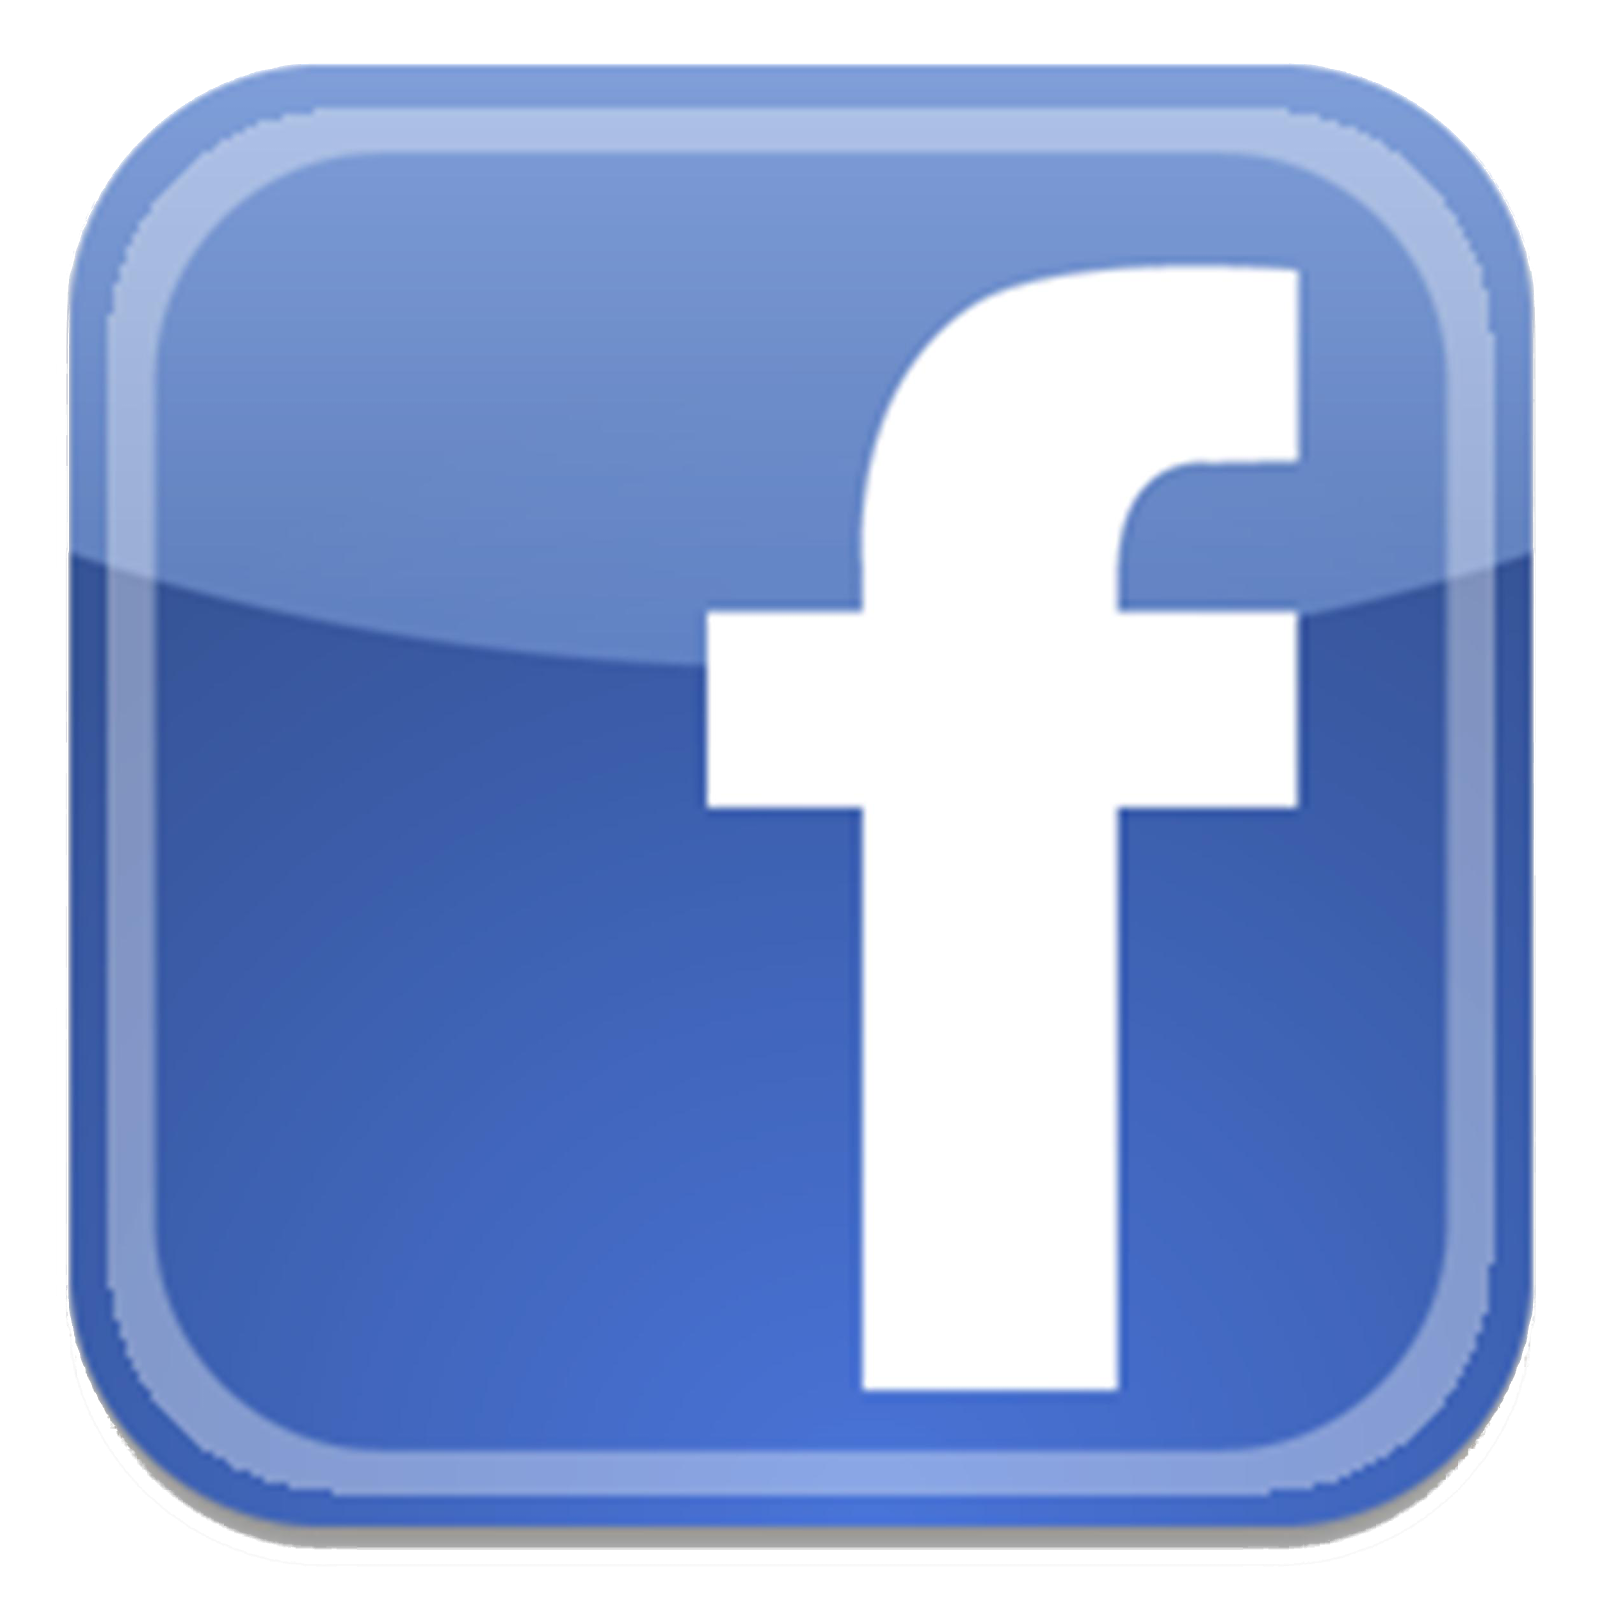 Facebook Logo Png   Impending image #11